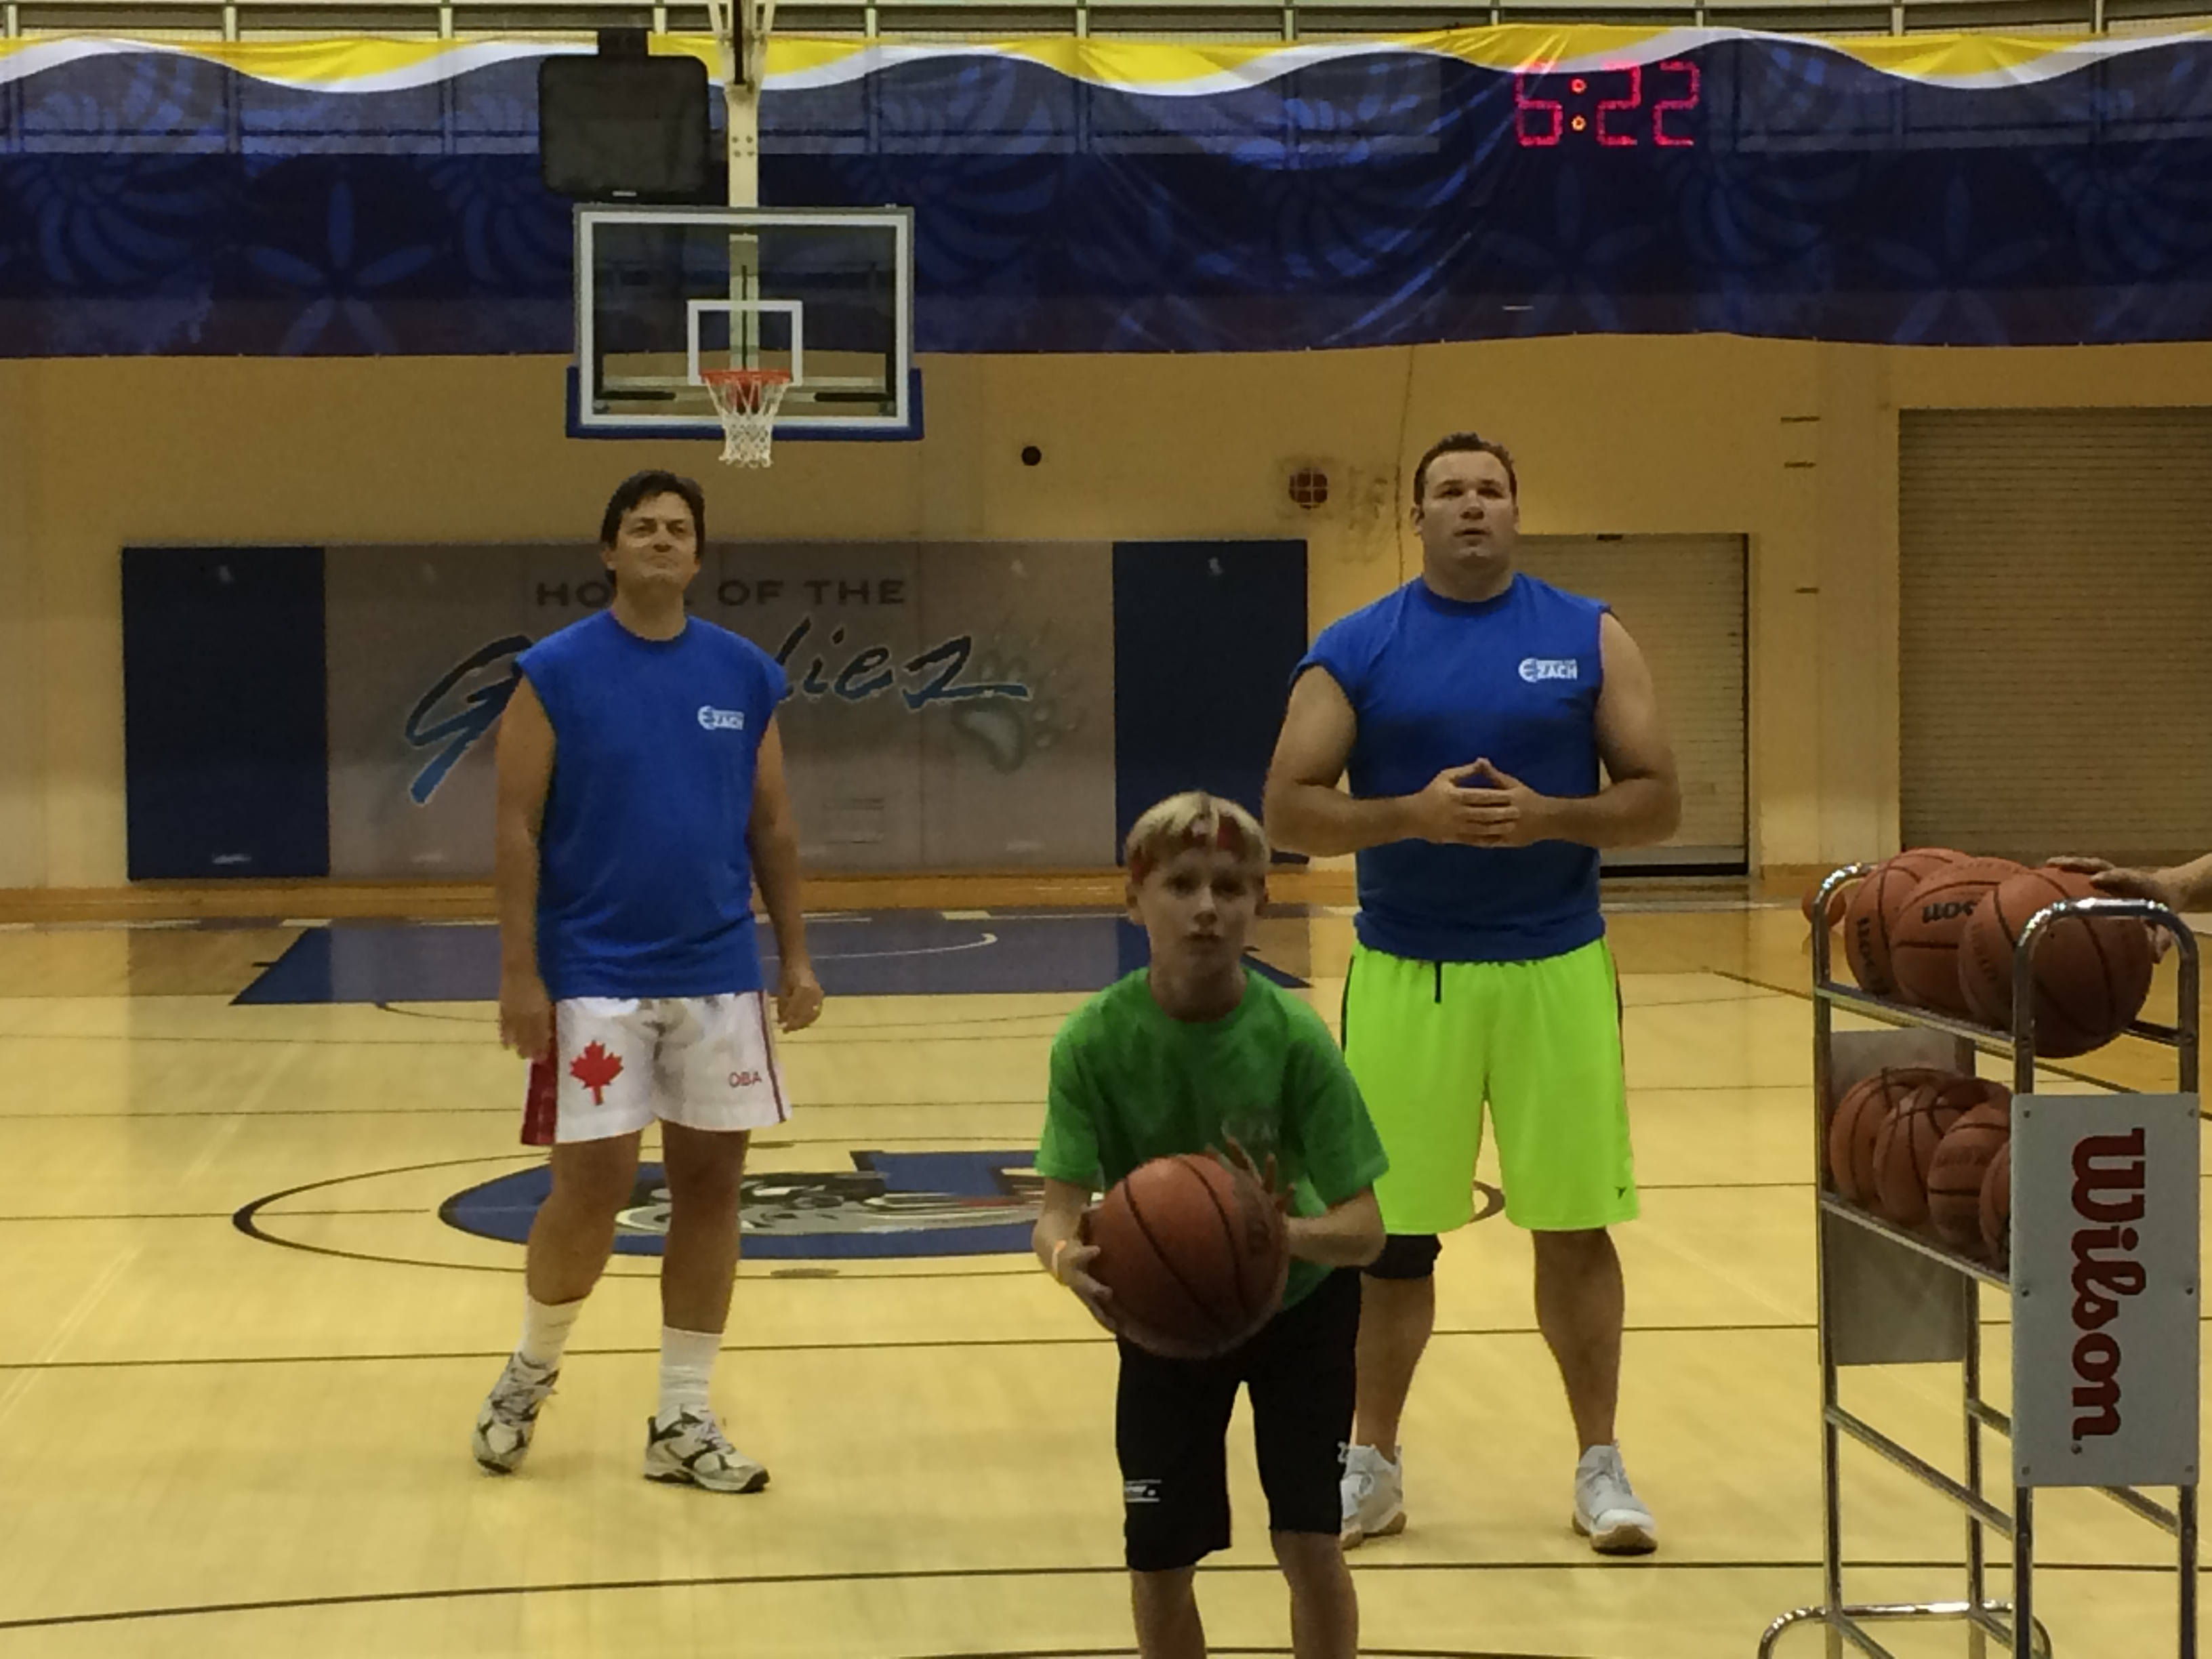 Jeff, Alex and Zach during the competition